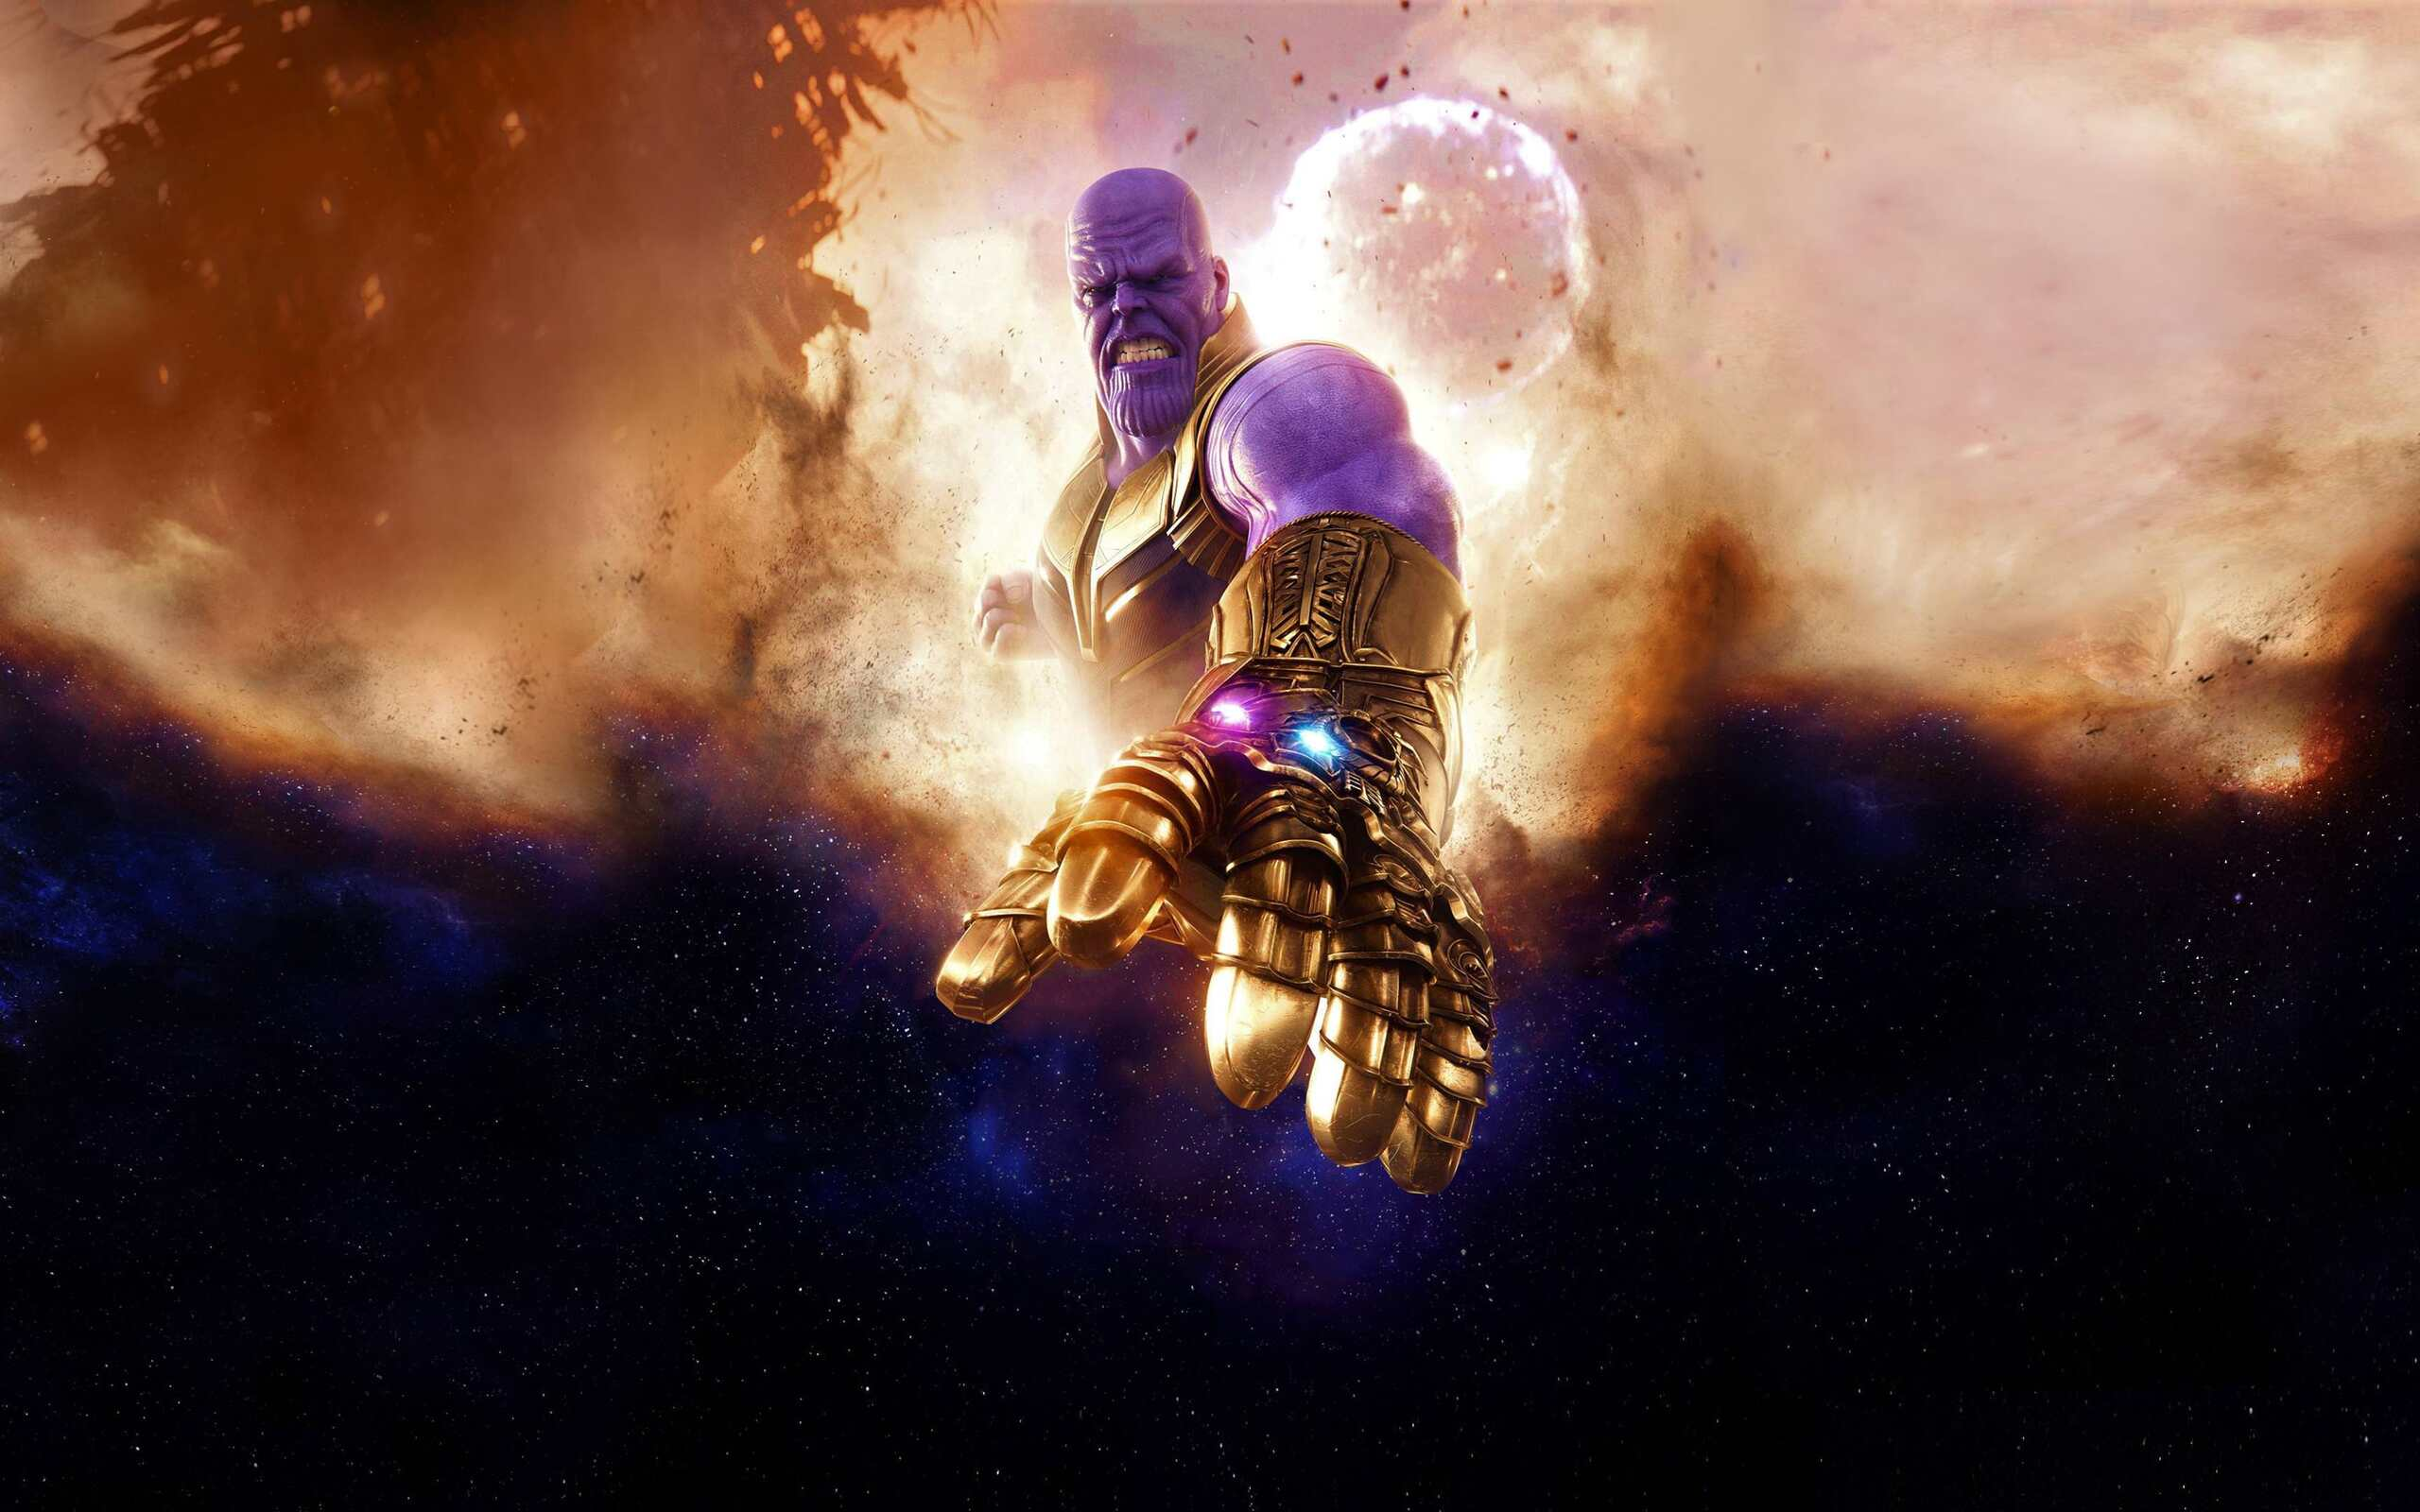 thanos-in-avengers-infinity-war-artwork-4k-px.jpg